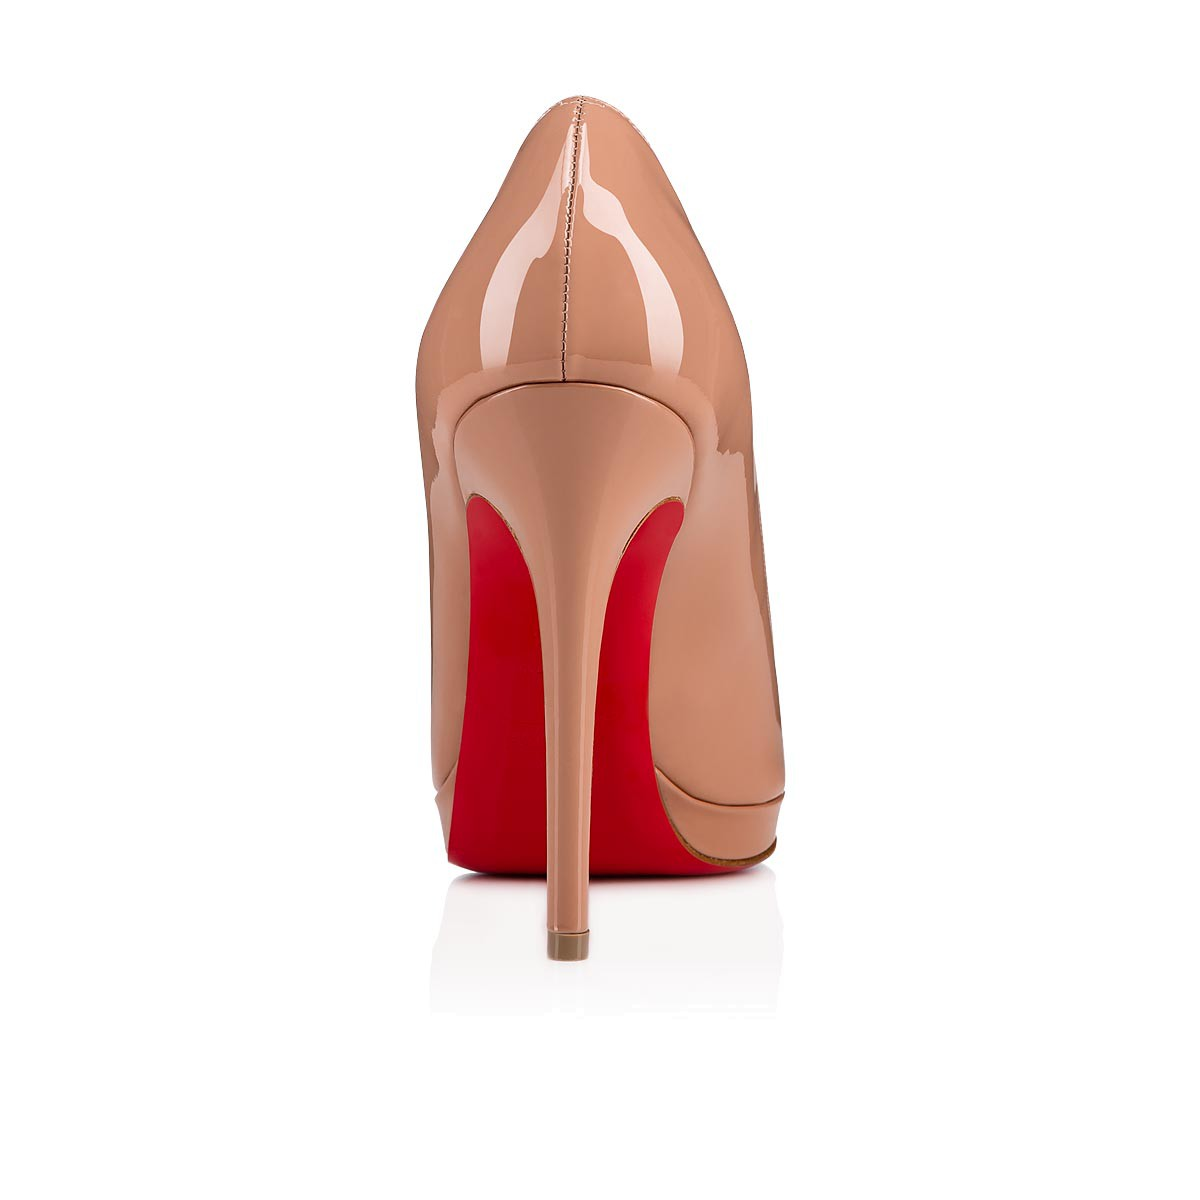 Women Shoes - New Simple Pump Patent - Christian Louboutin